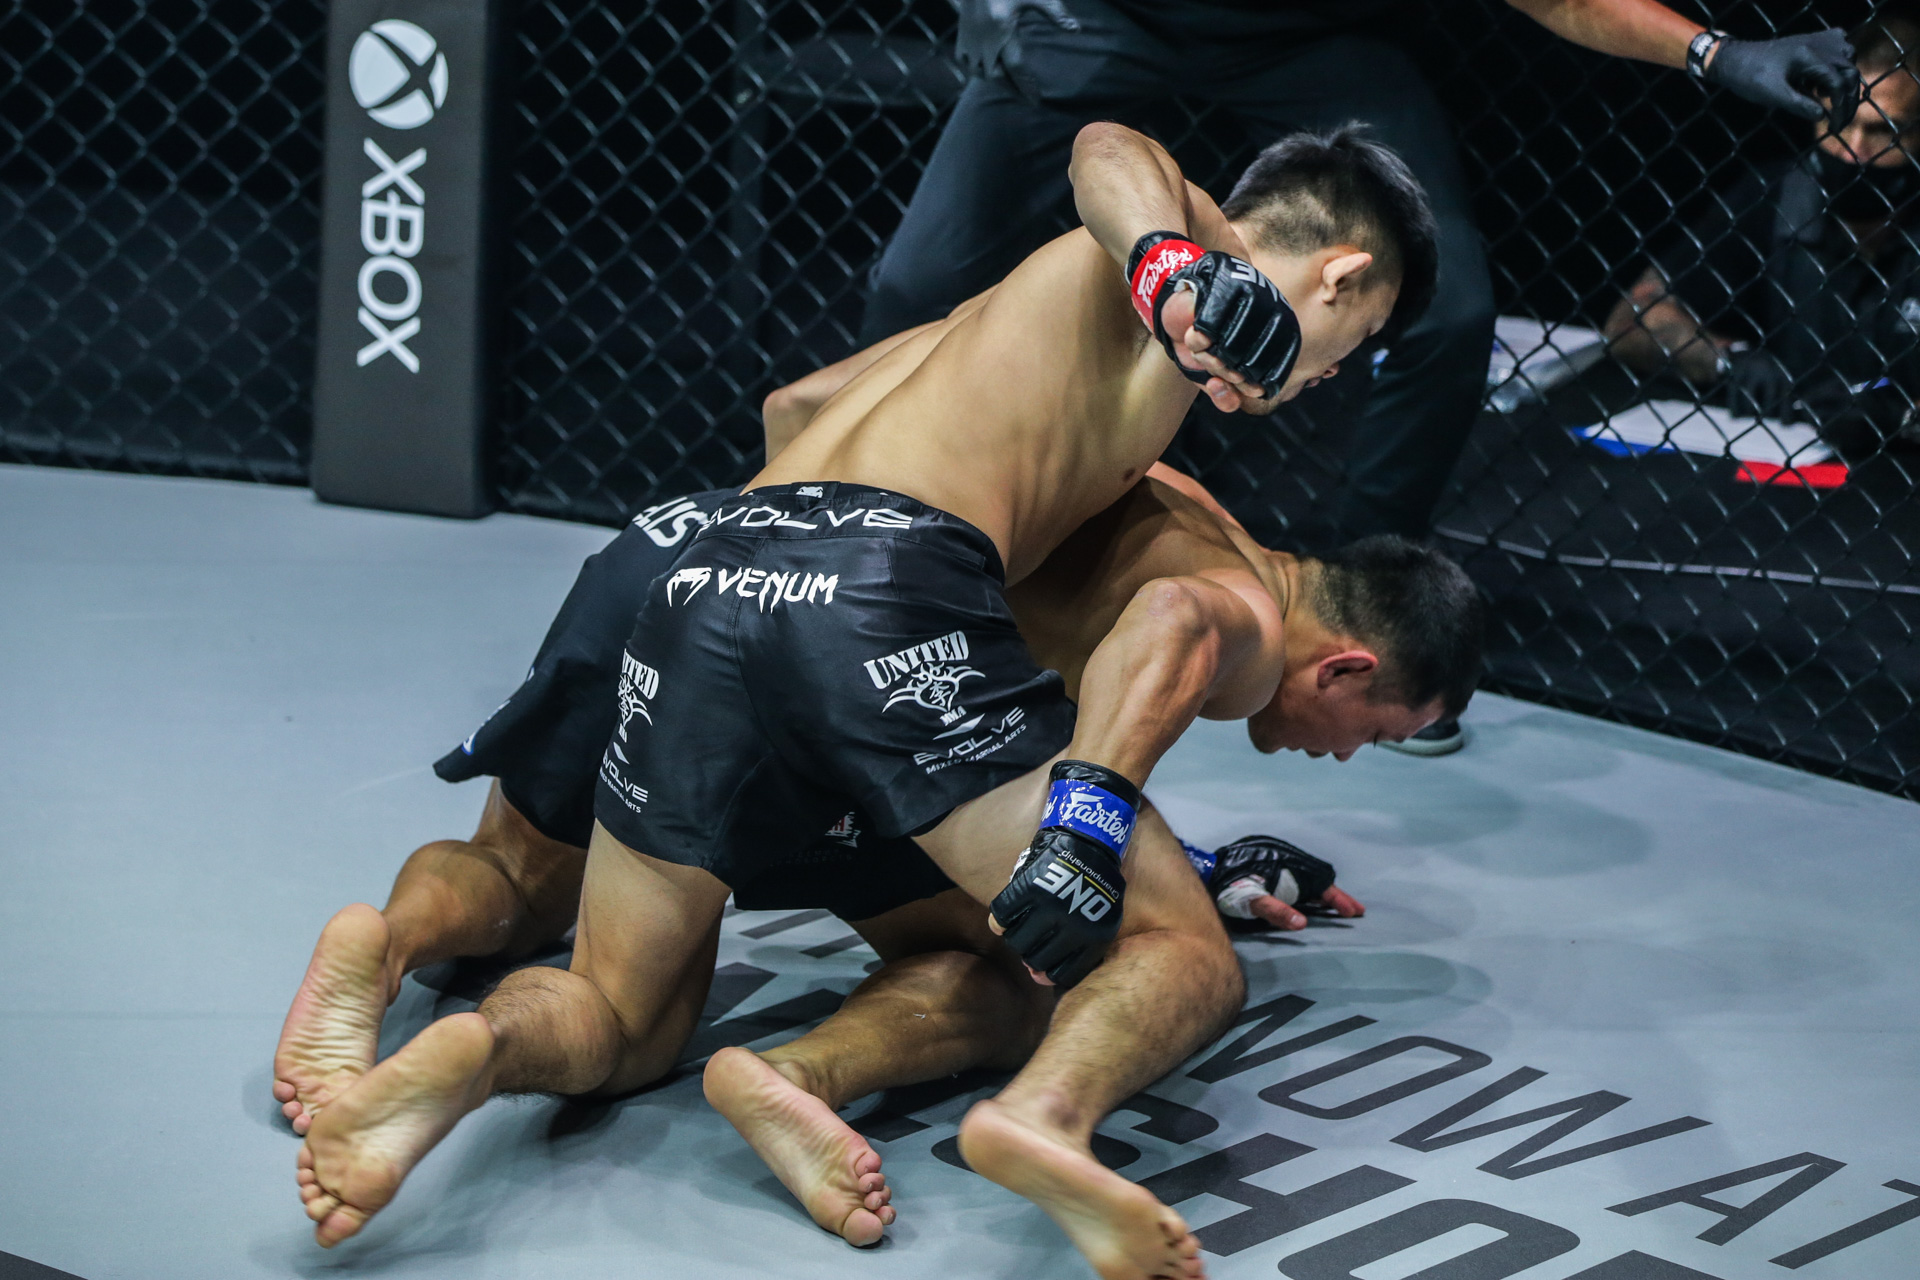 ONE-on-TNT-II-Christian-Lee-def-Timofey-Nastyukhin-shots ONE on TNT II: Christian Lee continues reign, blitzes Timofey Nastyukhin Kickboxing Mixed Martial Arts News ONE Championship  - philippine sports news